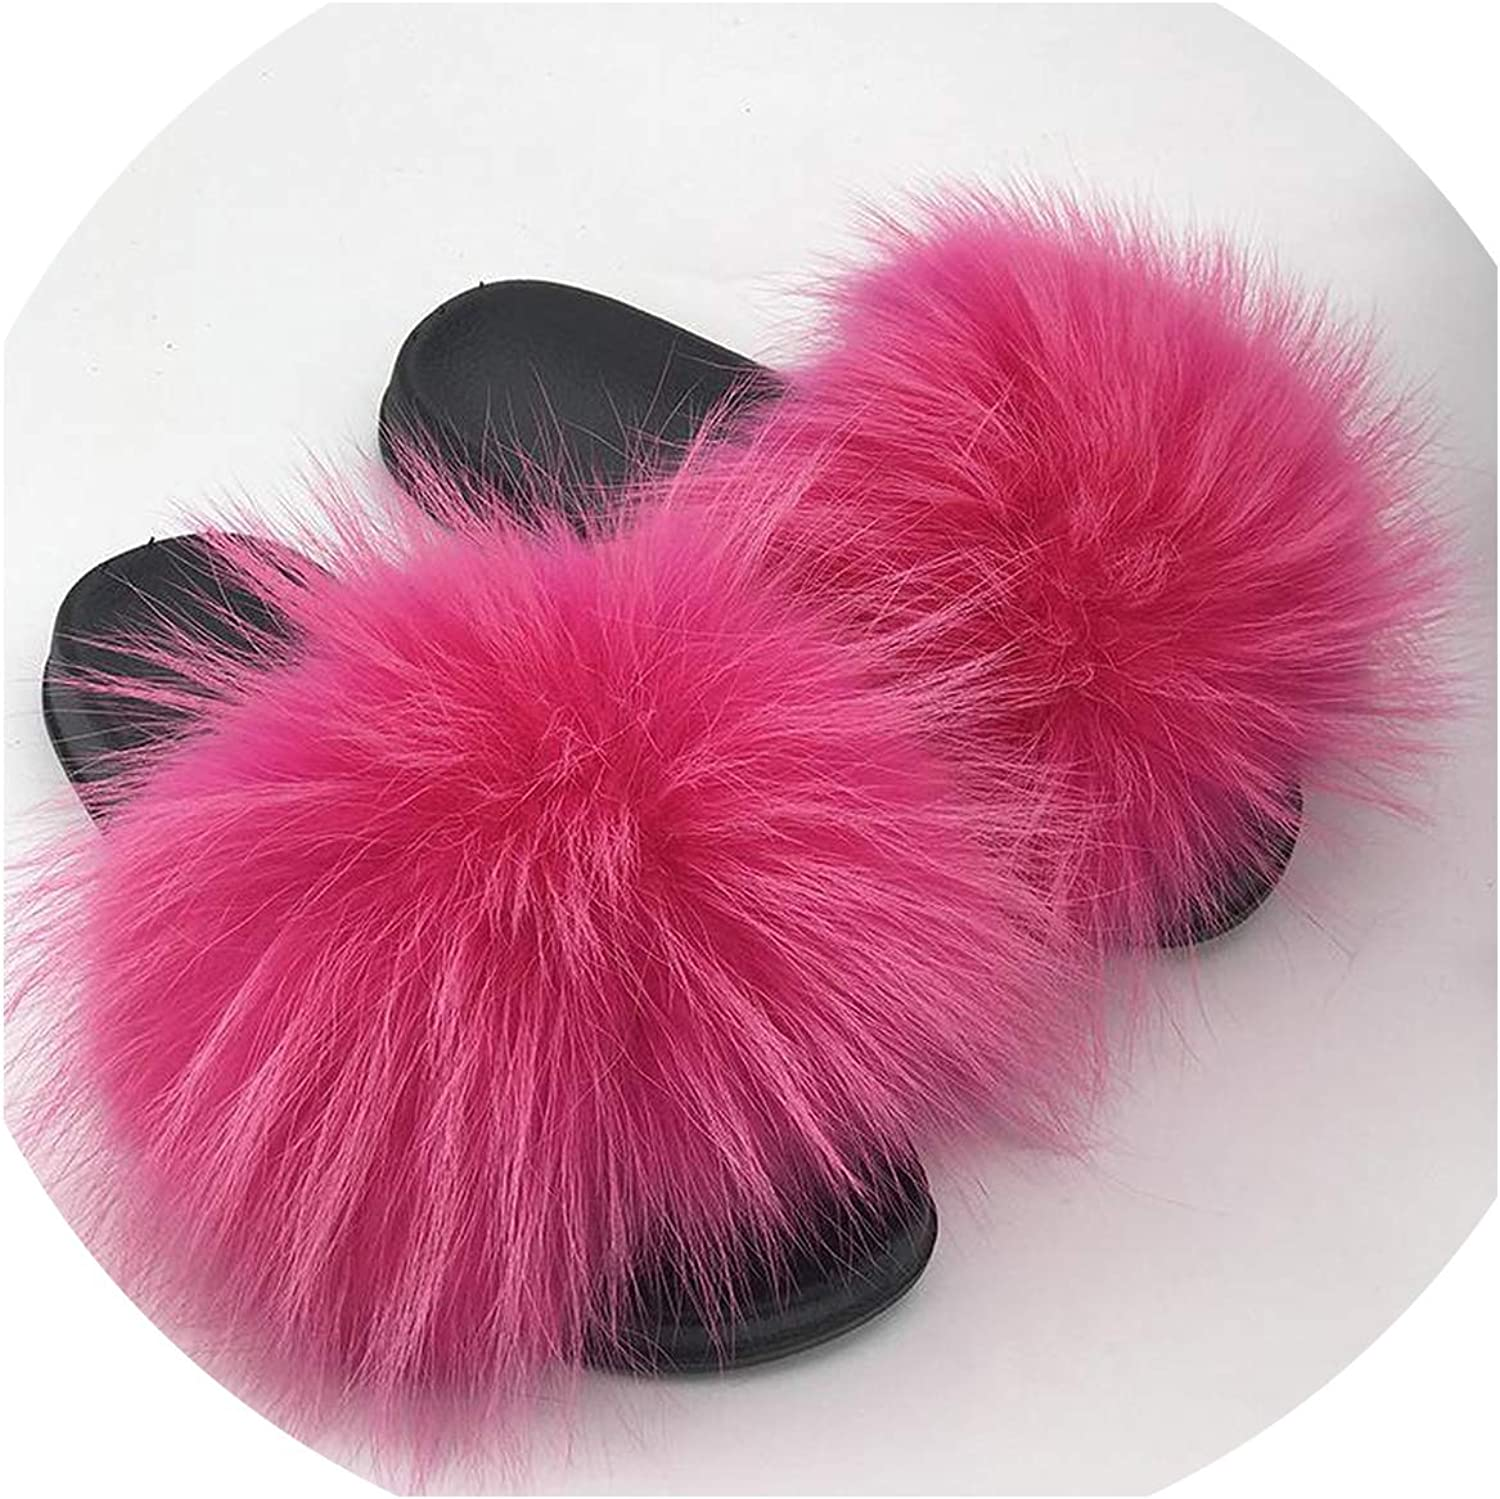 Just XiaoZhouZhou Real Raccoon Fur Slippers Women Sliders Casual Fox Hair Flat Fluffy Fashion Home Summer Big Size 45 Furry Flip Flops shoes,pink Pink red,9.5